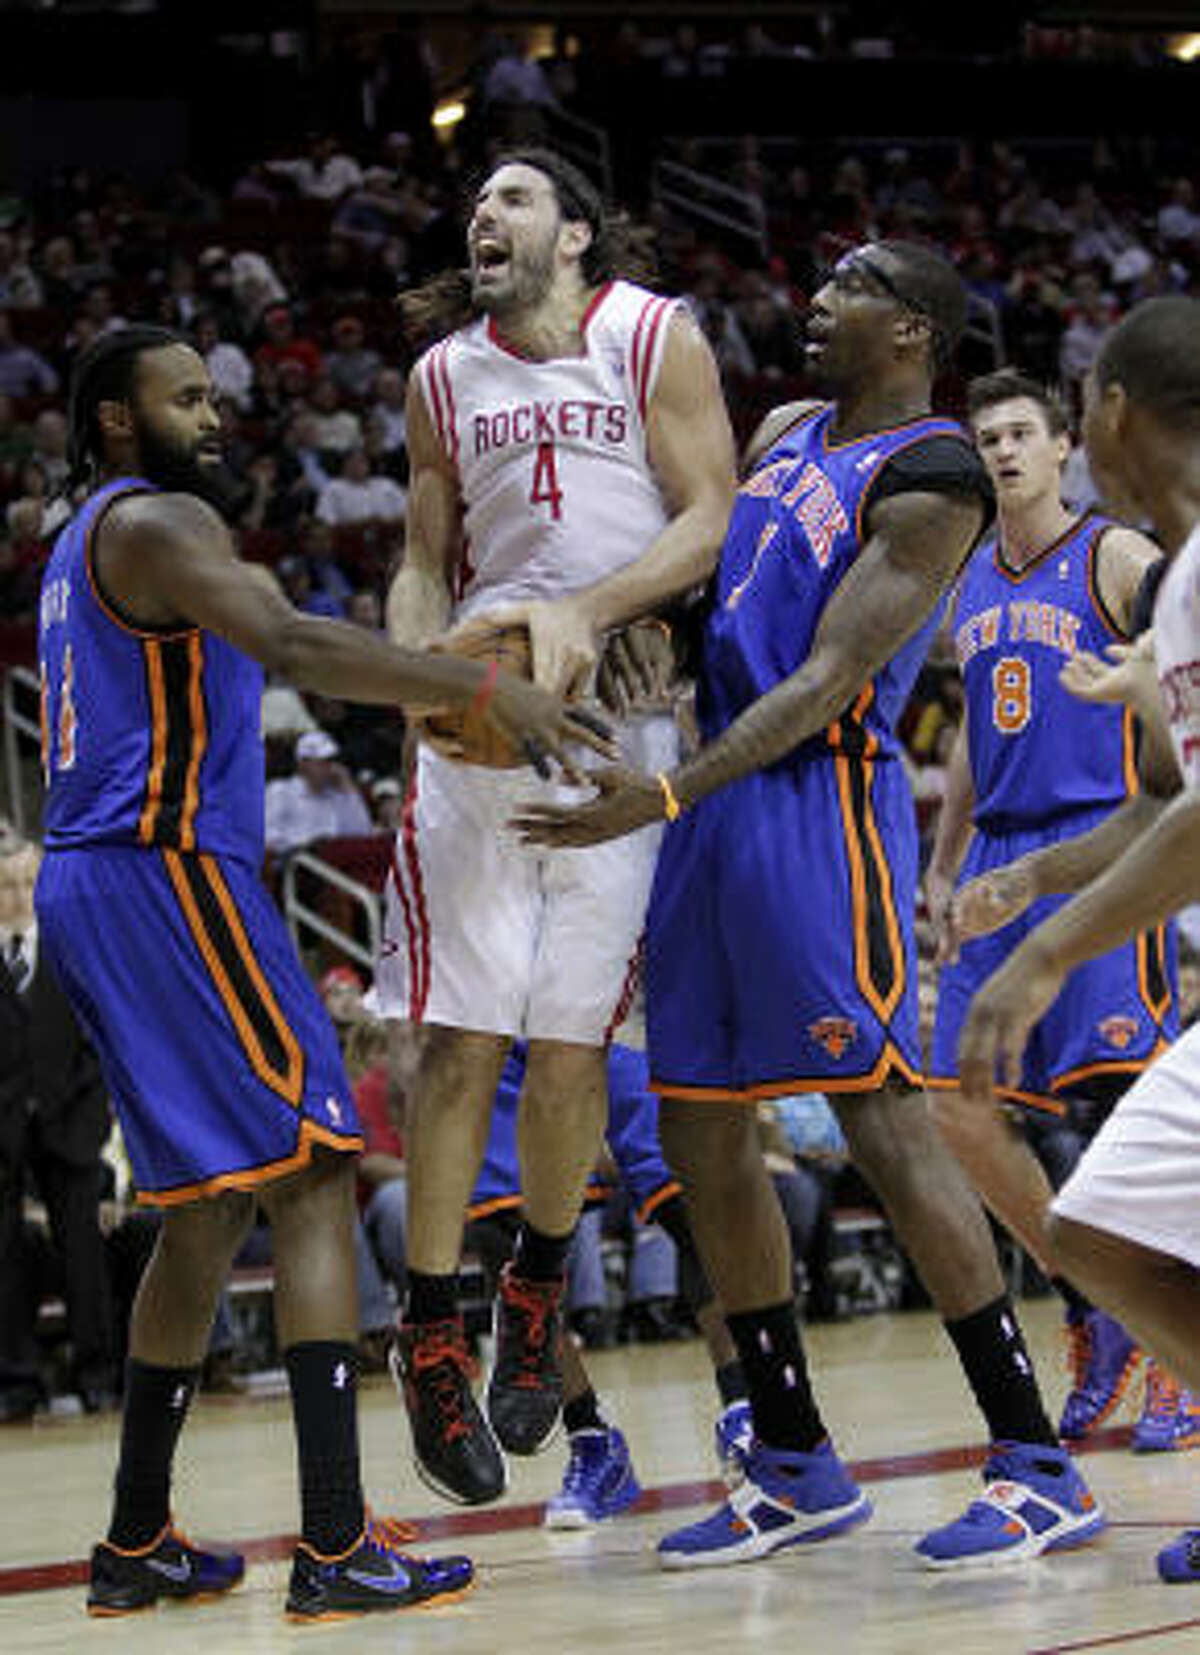 Rockets forward Luis Scola (4) is fouled by New York's Ronny Turiaf, left, and Amare Stoudemire during the first half.